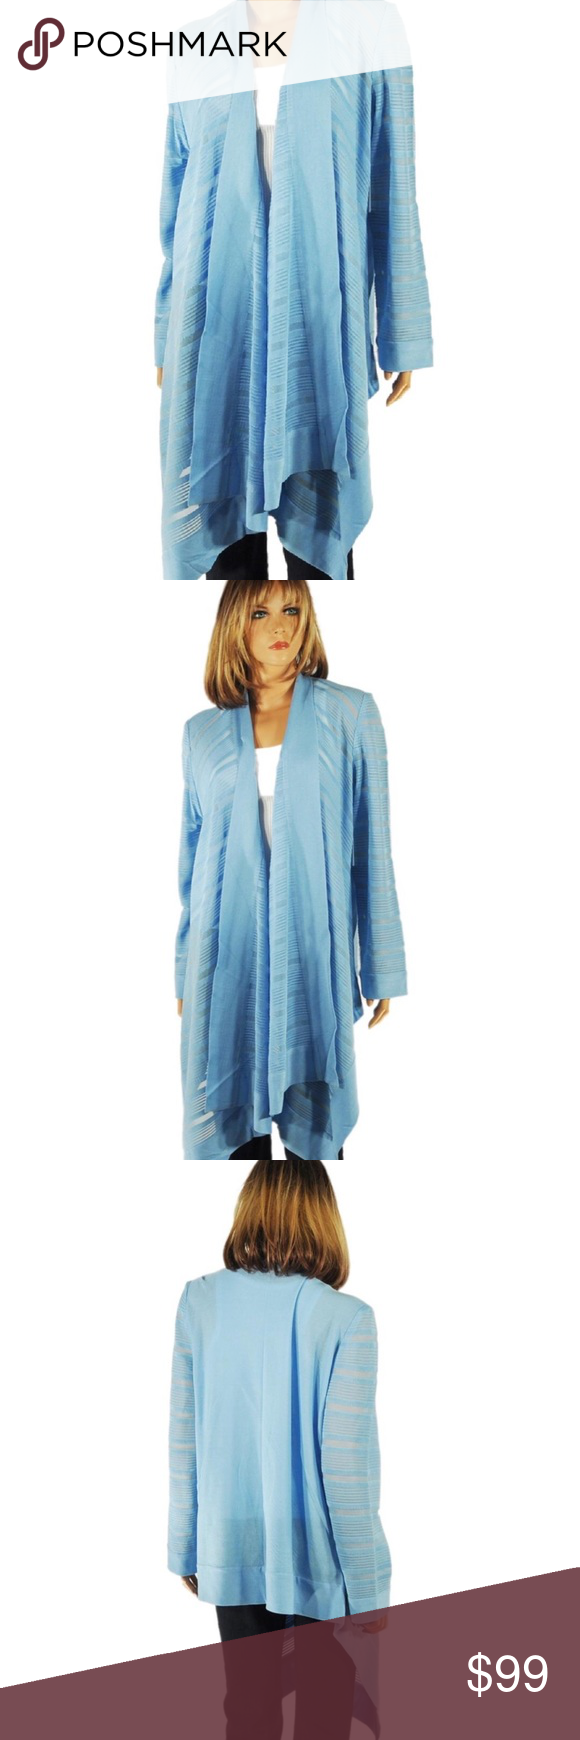 EXCLUSIVELY MISOOK Katherine Powder Blue Knit Open EXCLUSIVELY MISOOK Jacket/Cardigan New with Tag Size 3X Front and sleeves: Acrylic 86%, 9% polyester, 5% nylon  Back: Acrylic 90%, 10% polyester Powder blue Open Front Beautiful sheer illusion panels on the front and sleeves Hand wash and drip dry Pants are for display only and not included No Trades Misook Jackets & Coats Capes